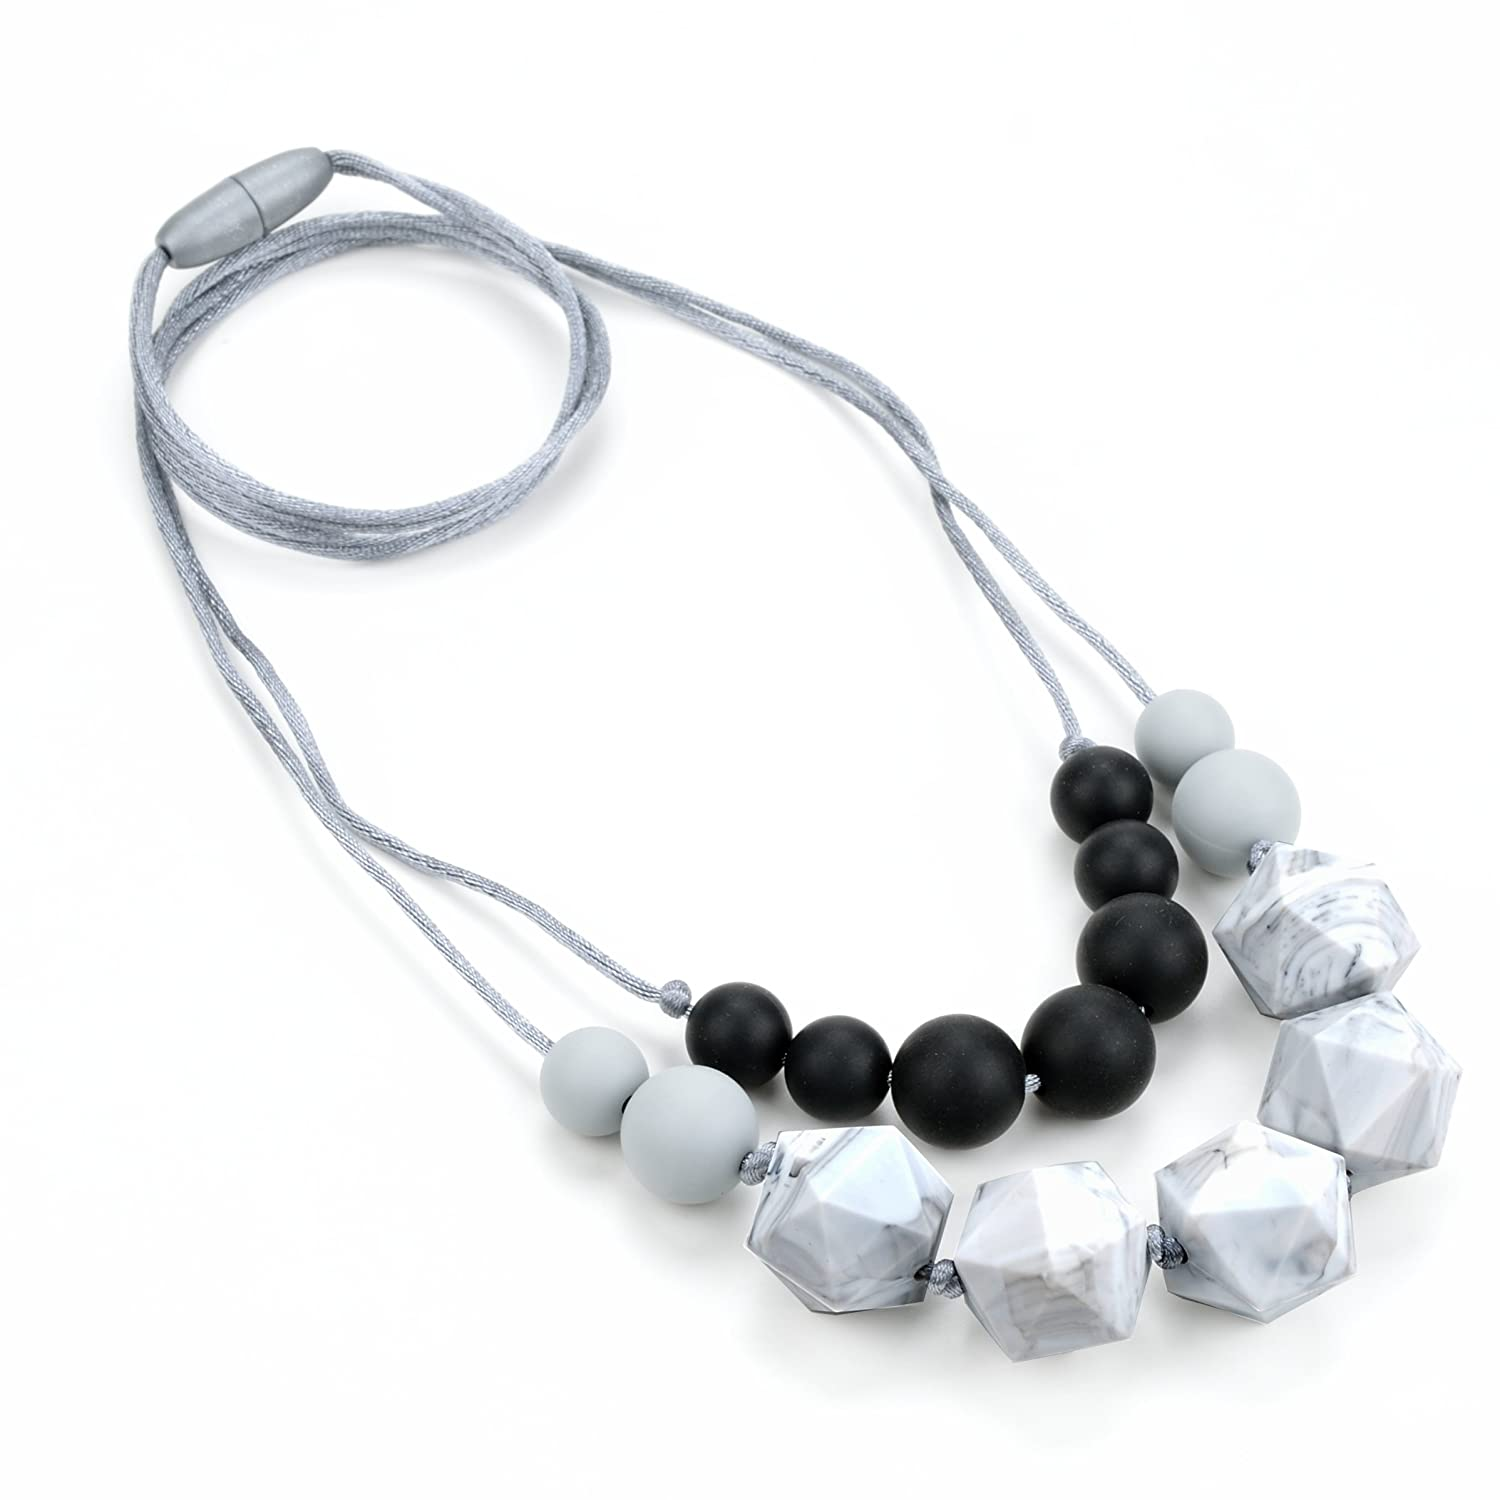 Lofca Baby Teething Necklace for Mom to Wear-Great Teether Toy